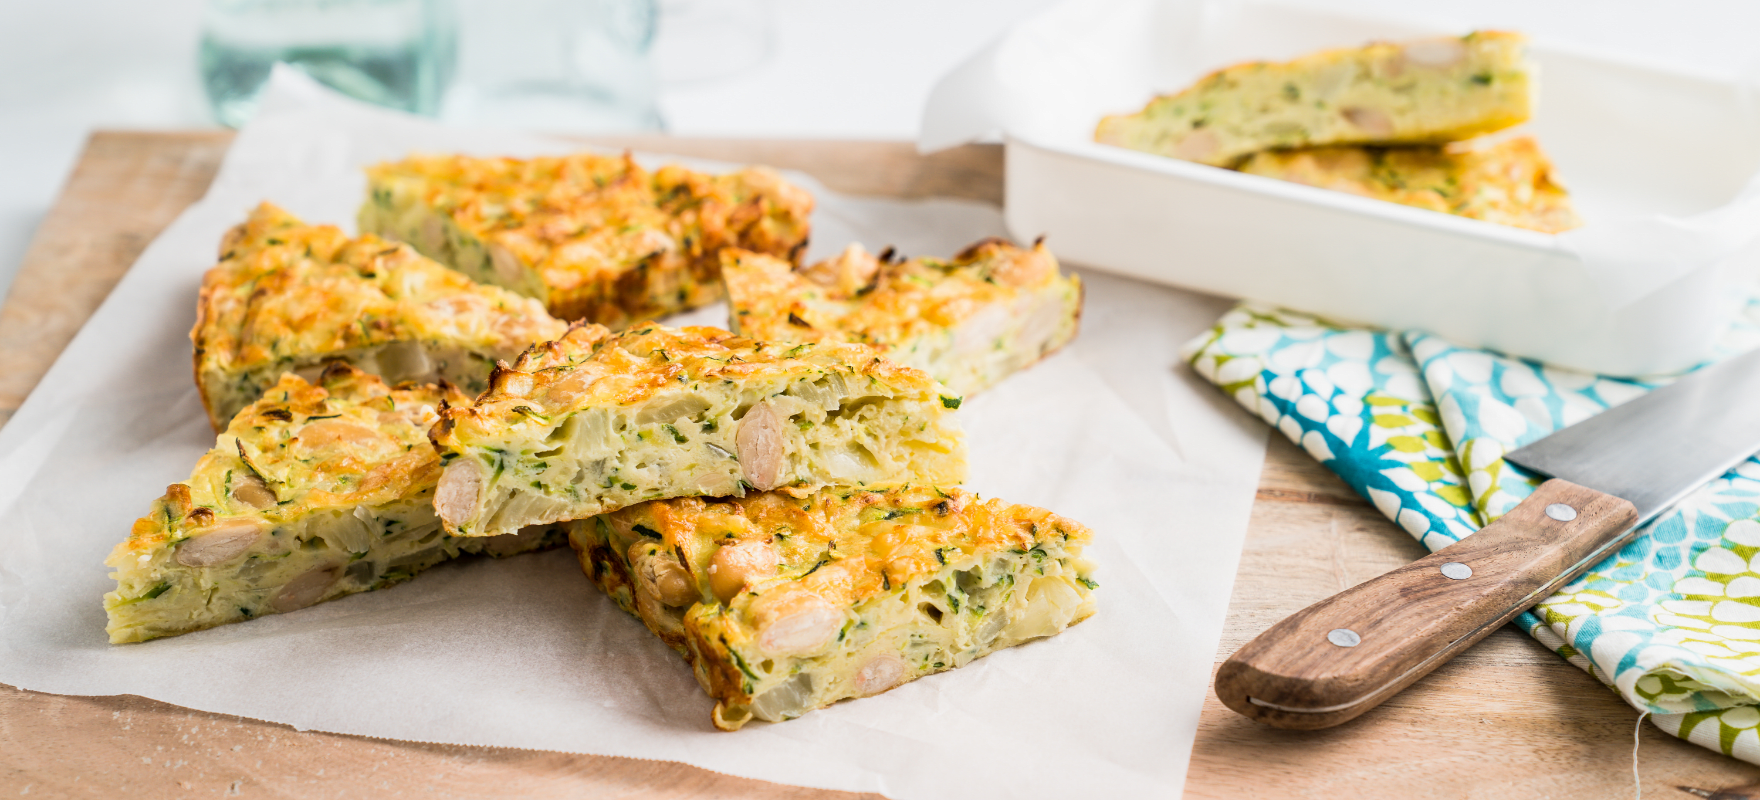 Zucchini slice with butter beans image 1